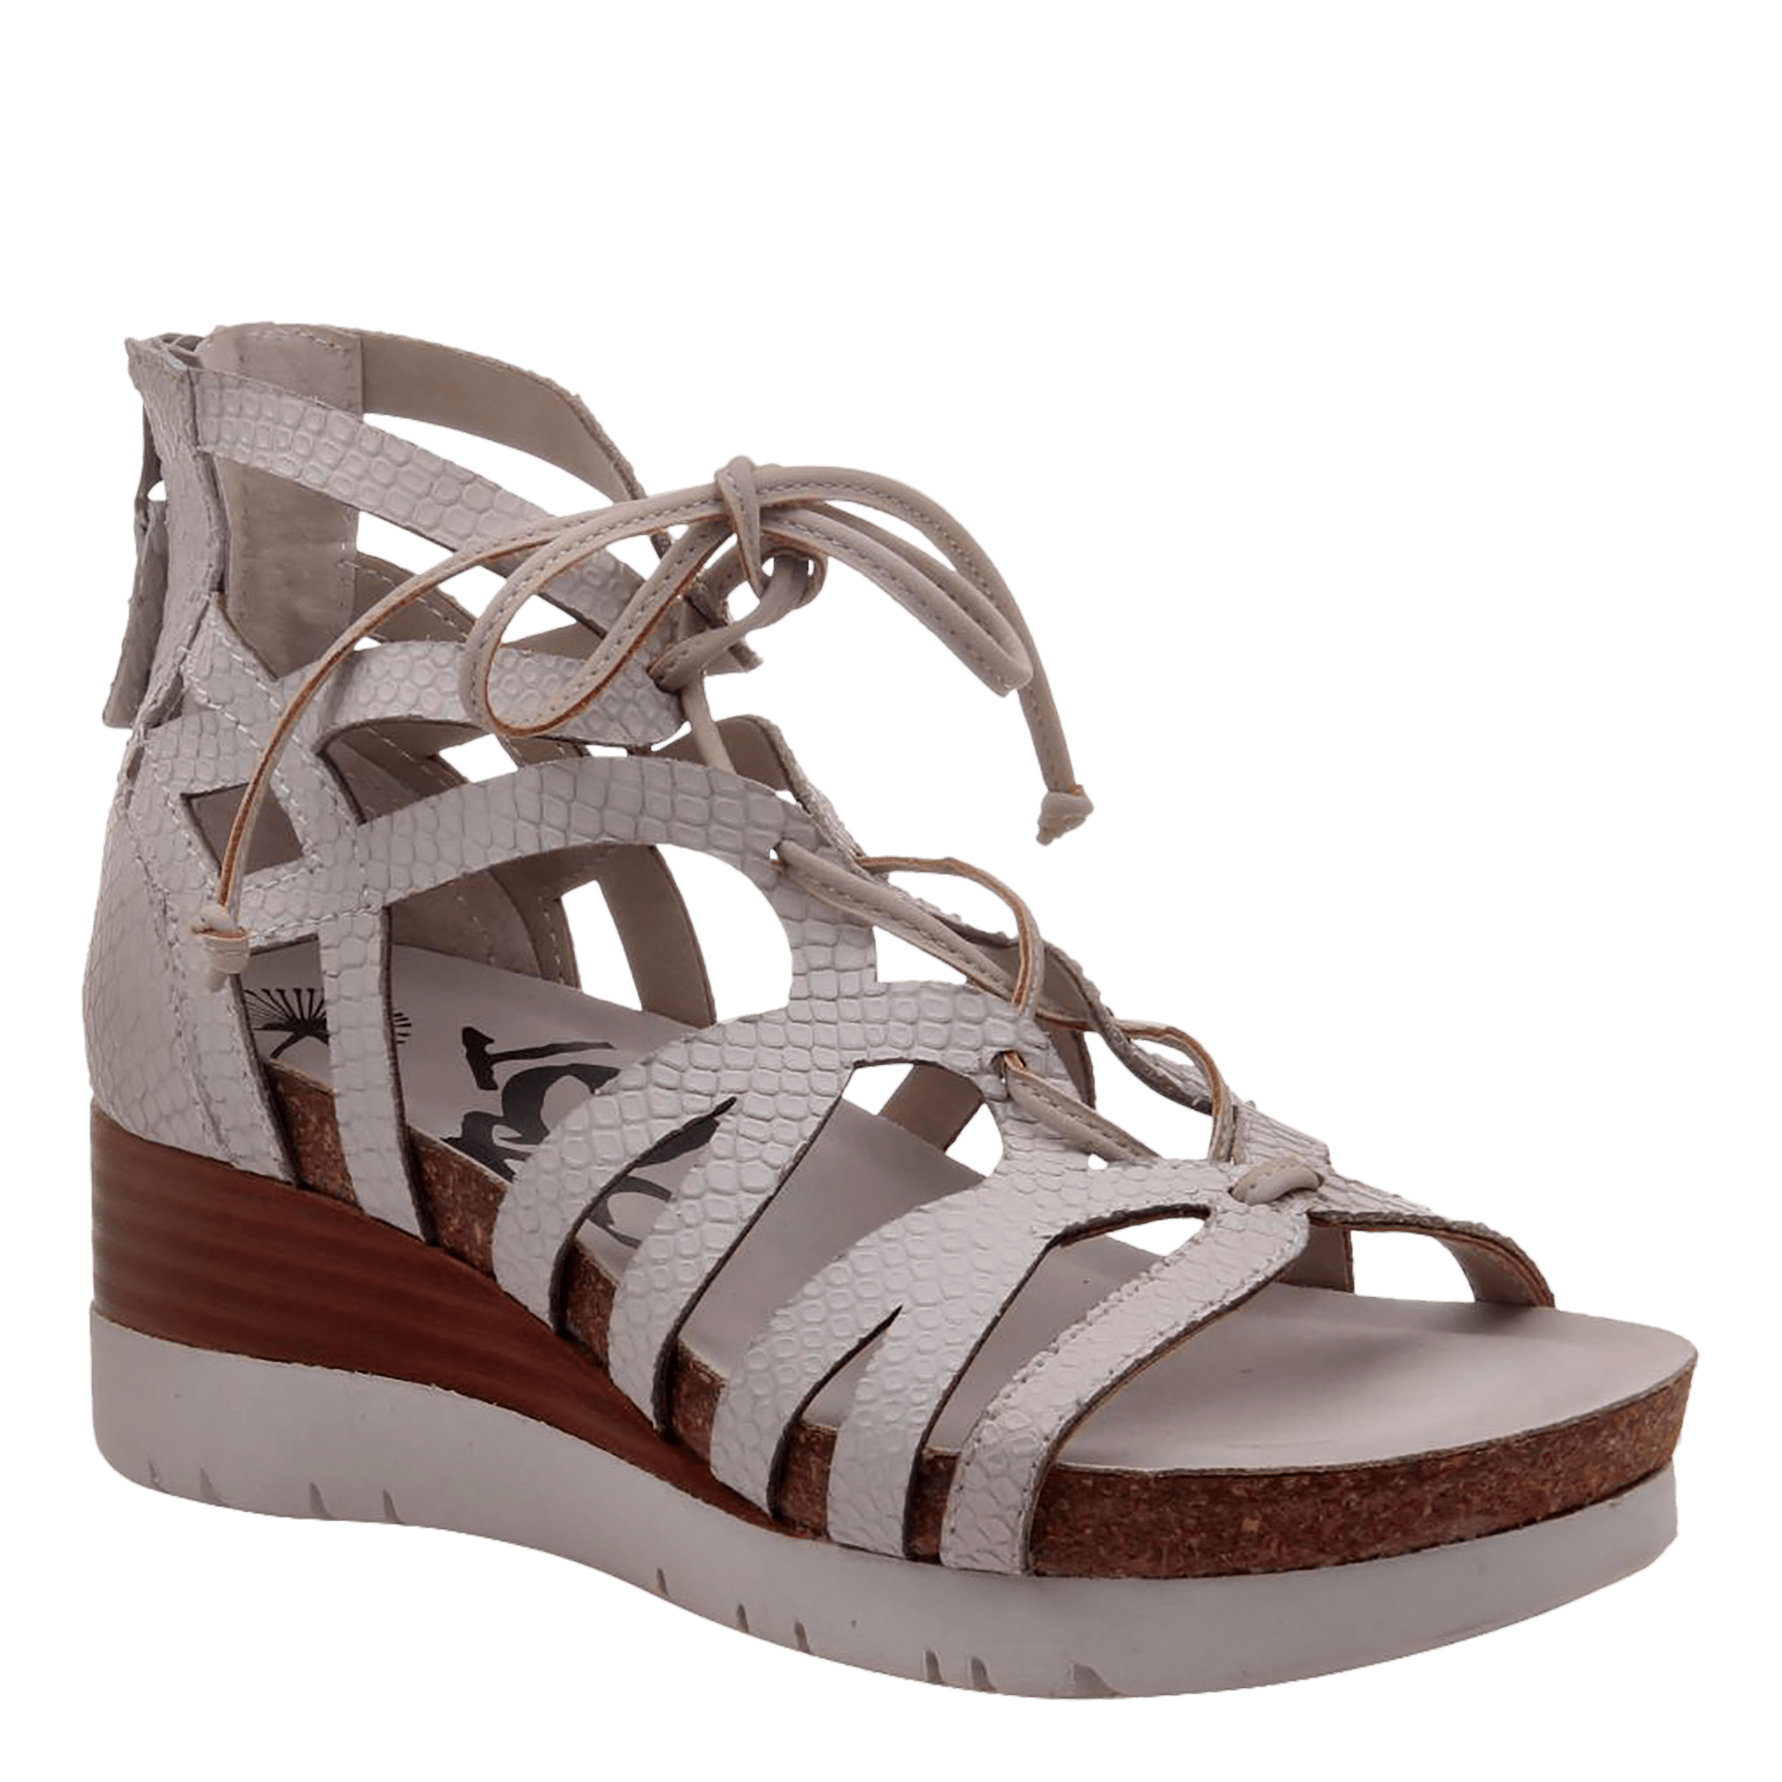 c6cbba8b4 Escapade in Sport White Wedge Sandals | Women's Shoes by OTBT